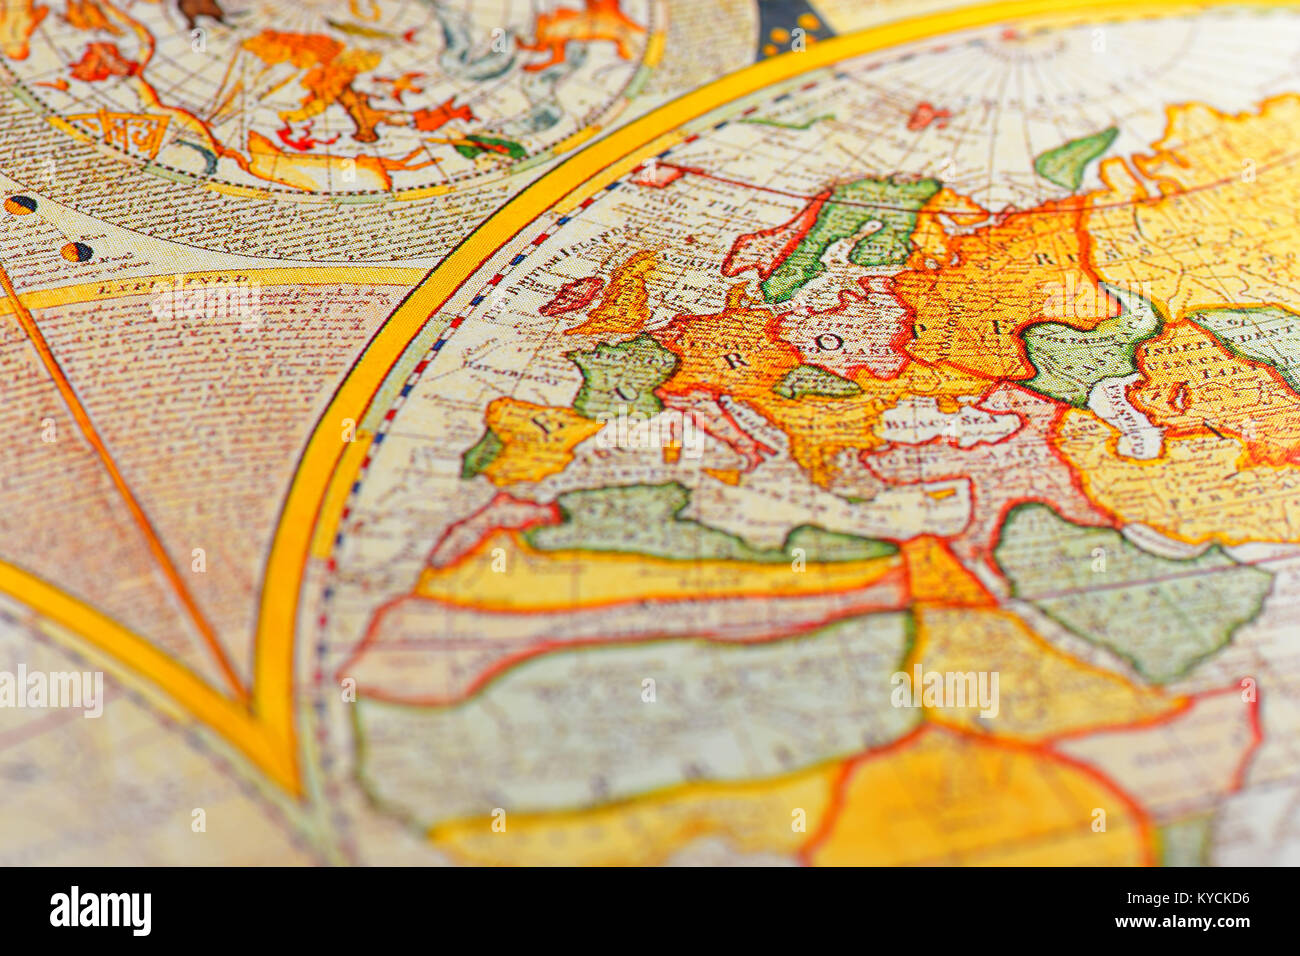 Old Antique Map Of Britain Europe Stock Photo 171767714 Alamy